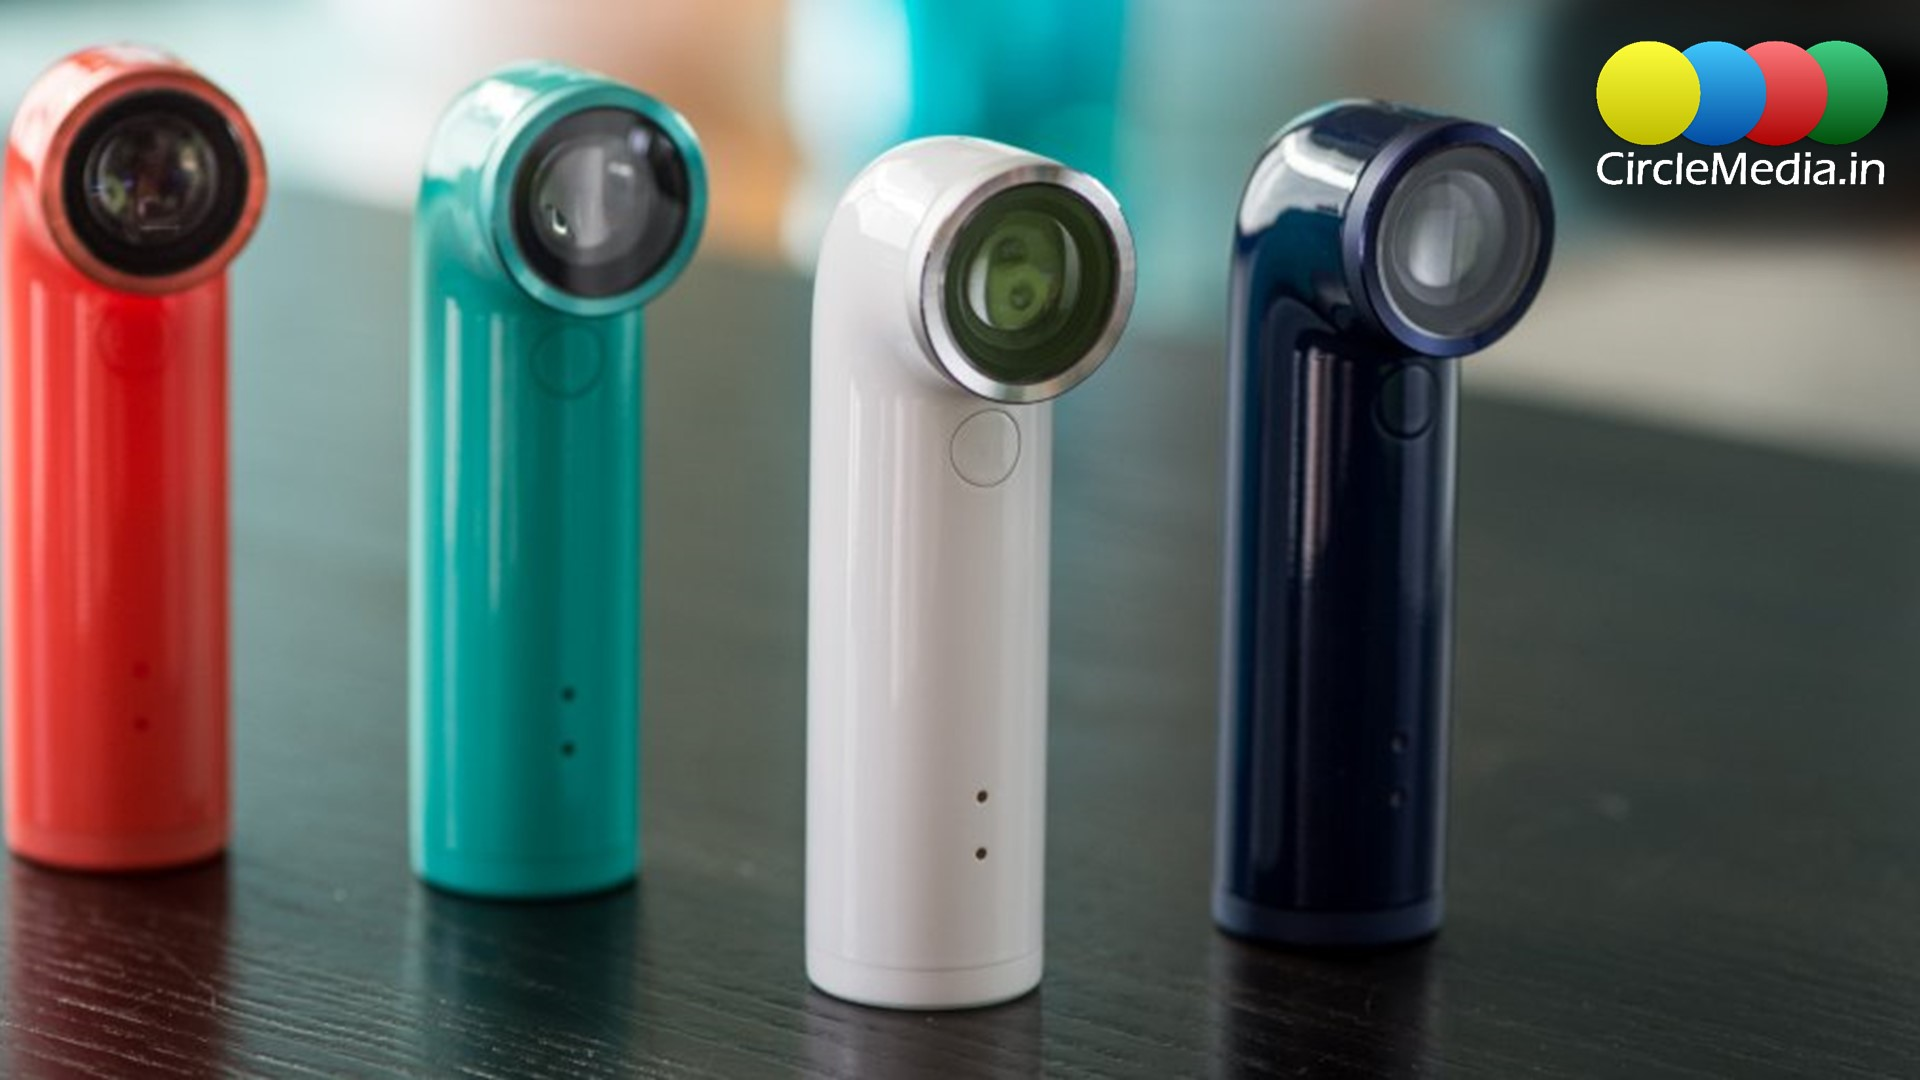 HTC Re Action Camera Review, Best Action Cameras, GoPro Alternative Cameras